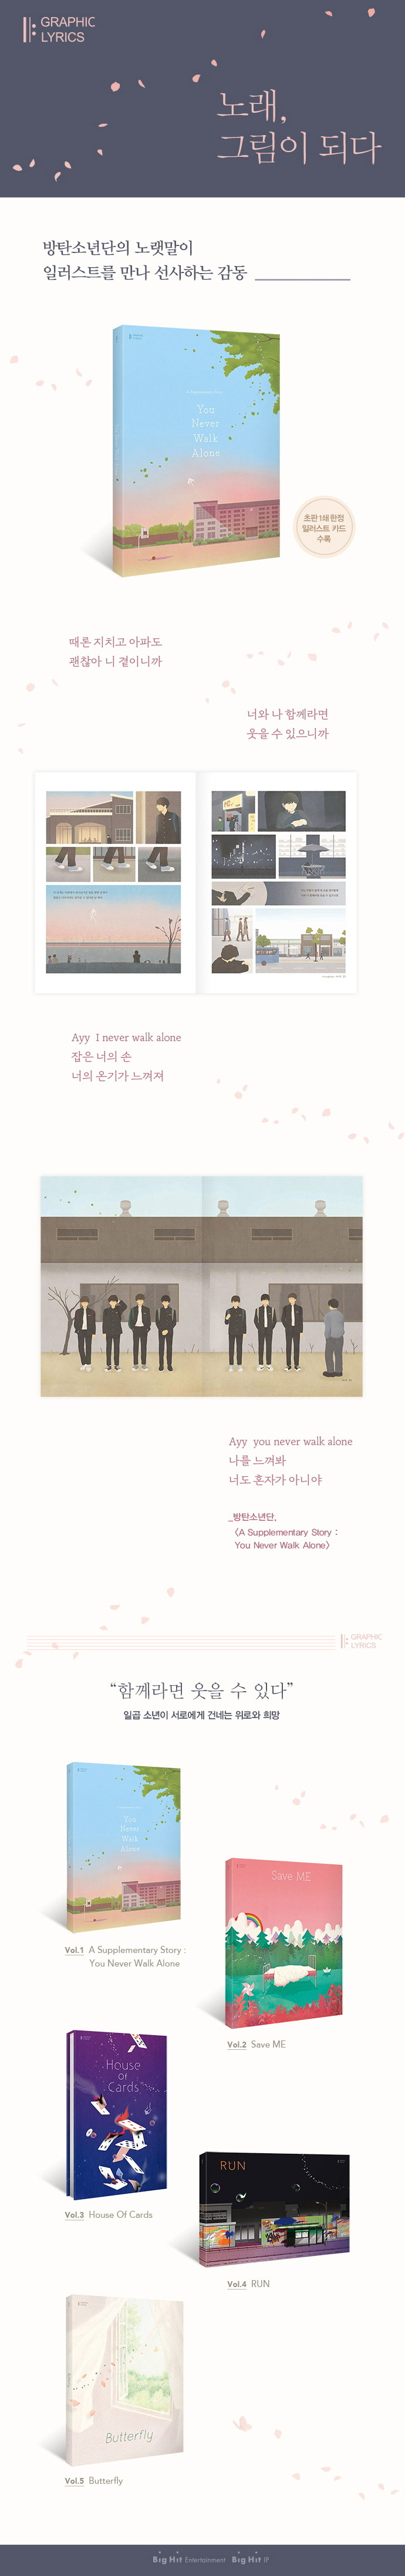 BTS GRAPHIC LYRICS Vol. 1 - A Supplementary Story : You Never Walk Alone